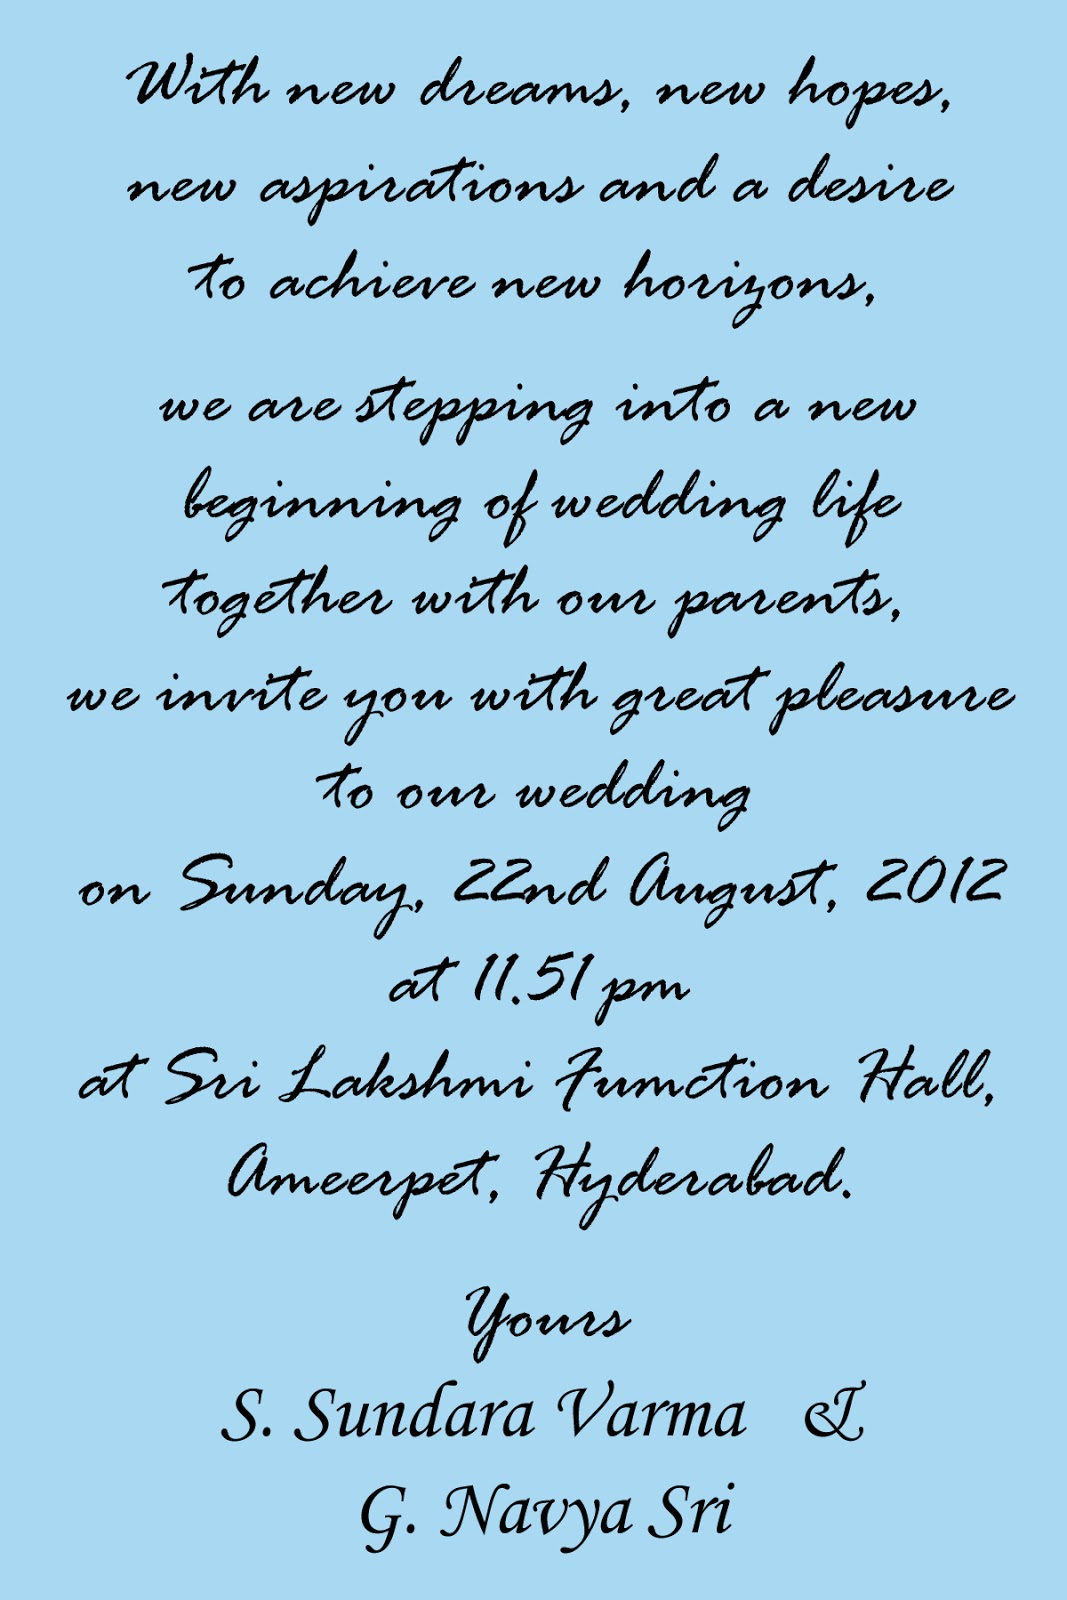 Indian Wedding Invitation Wording For Friends Card | PaperInvite